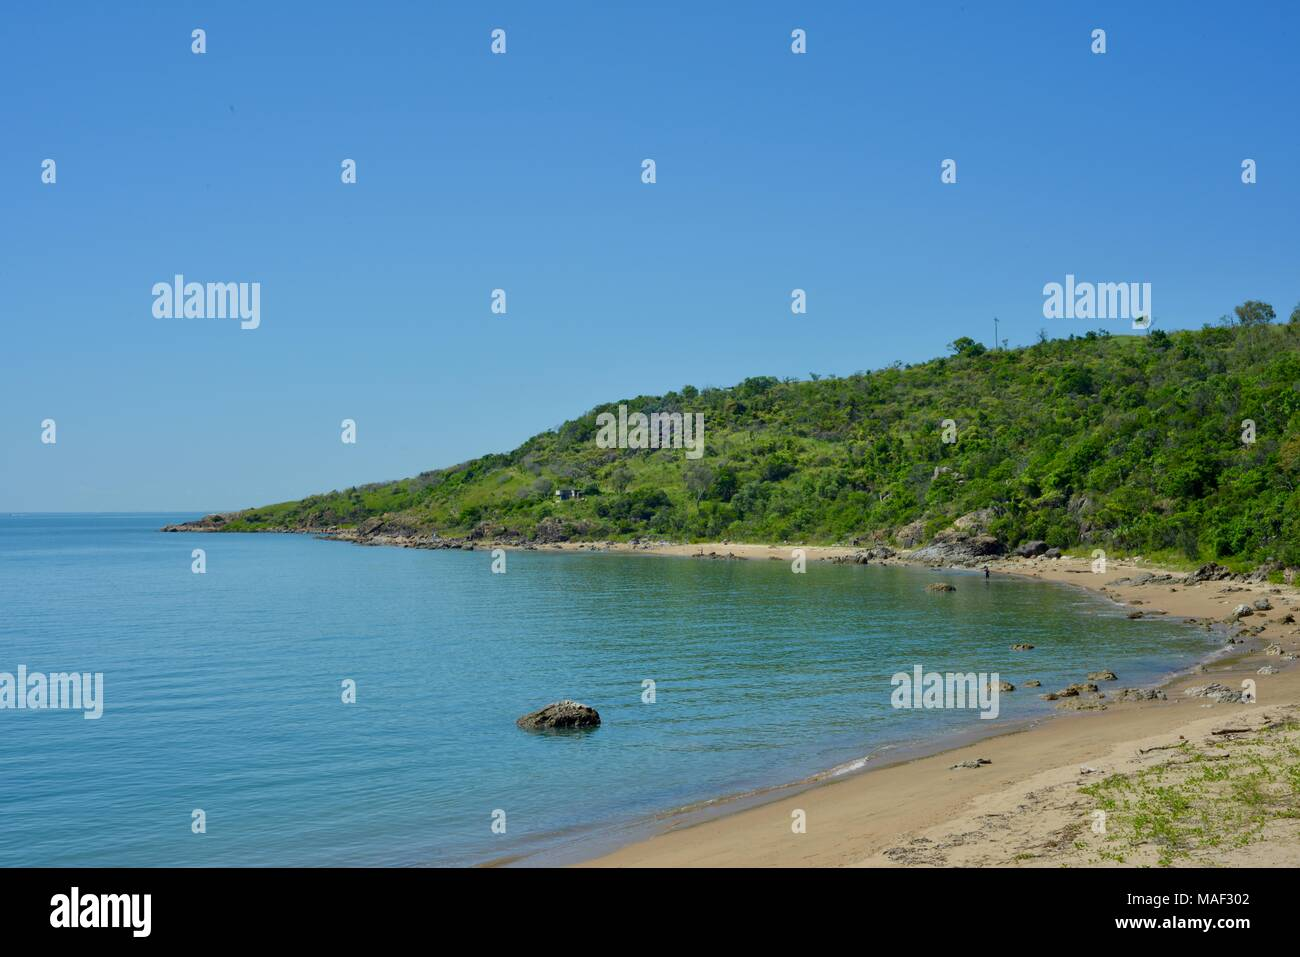 The ocean and beach without people with a feeling of remoteness, Shelly Cove trail at Cape Pallarenda Conservation Park Queensland Australia - Stock Image